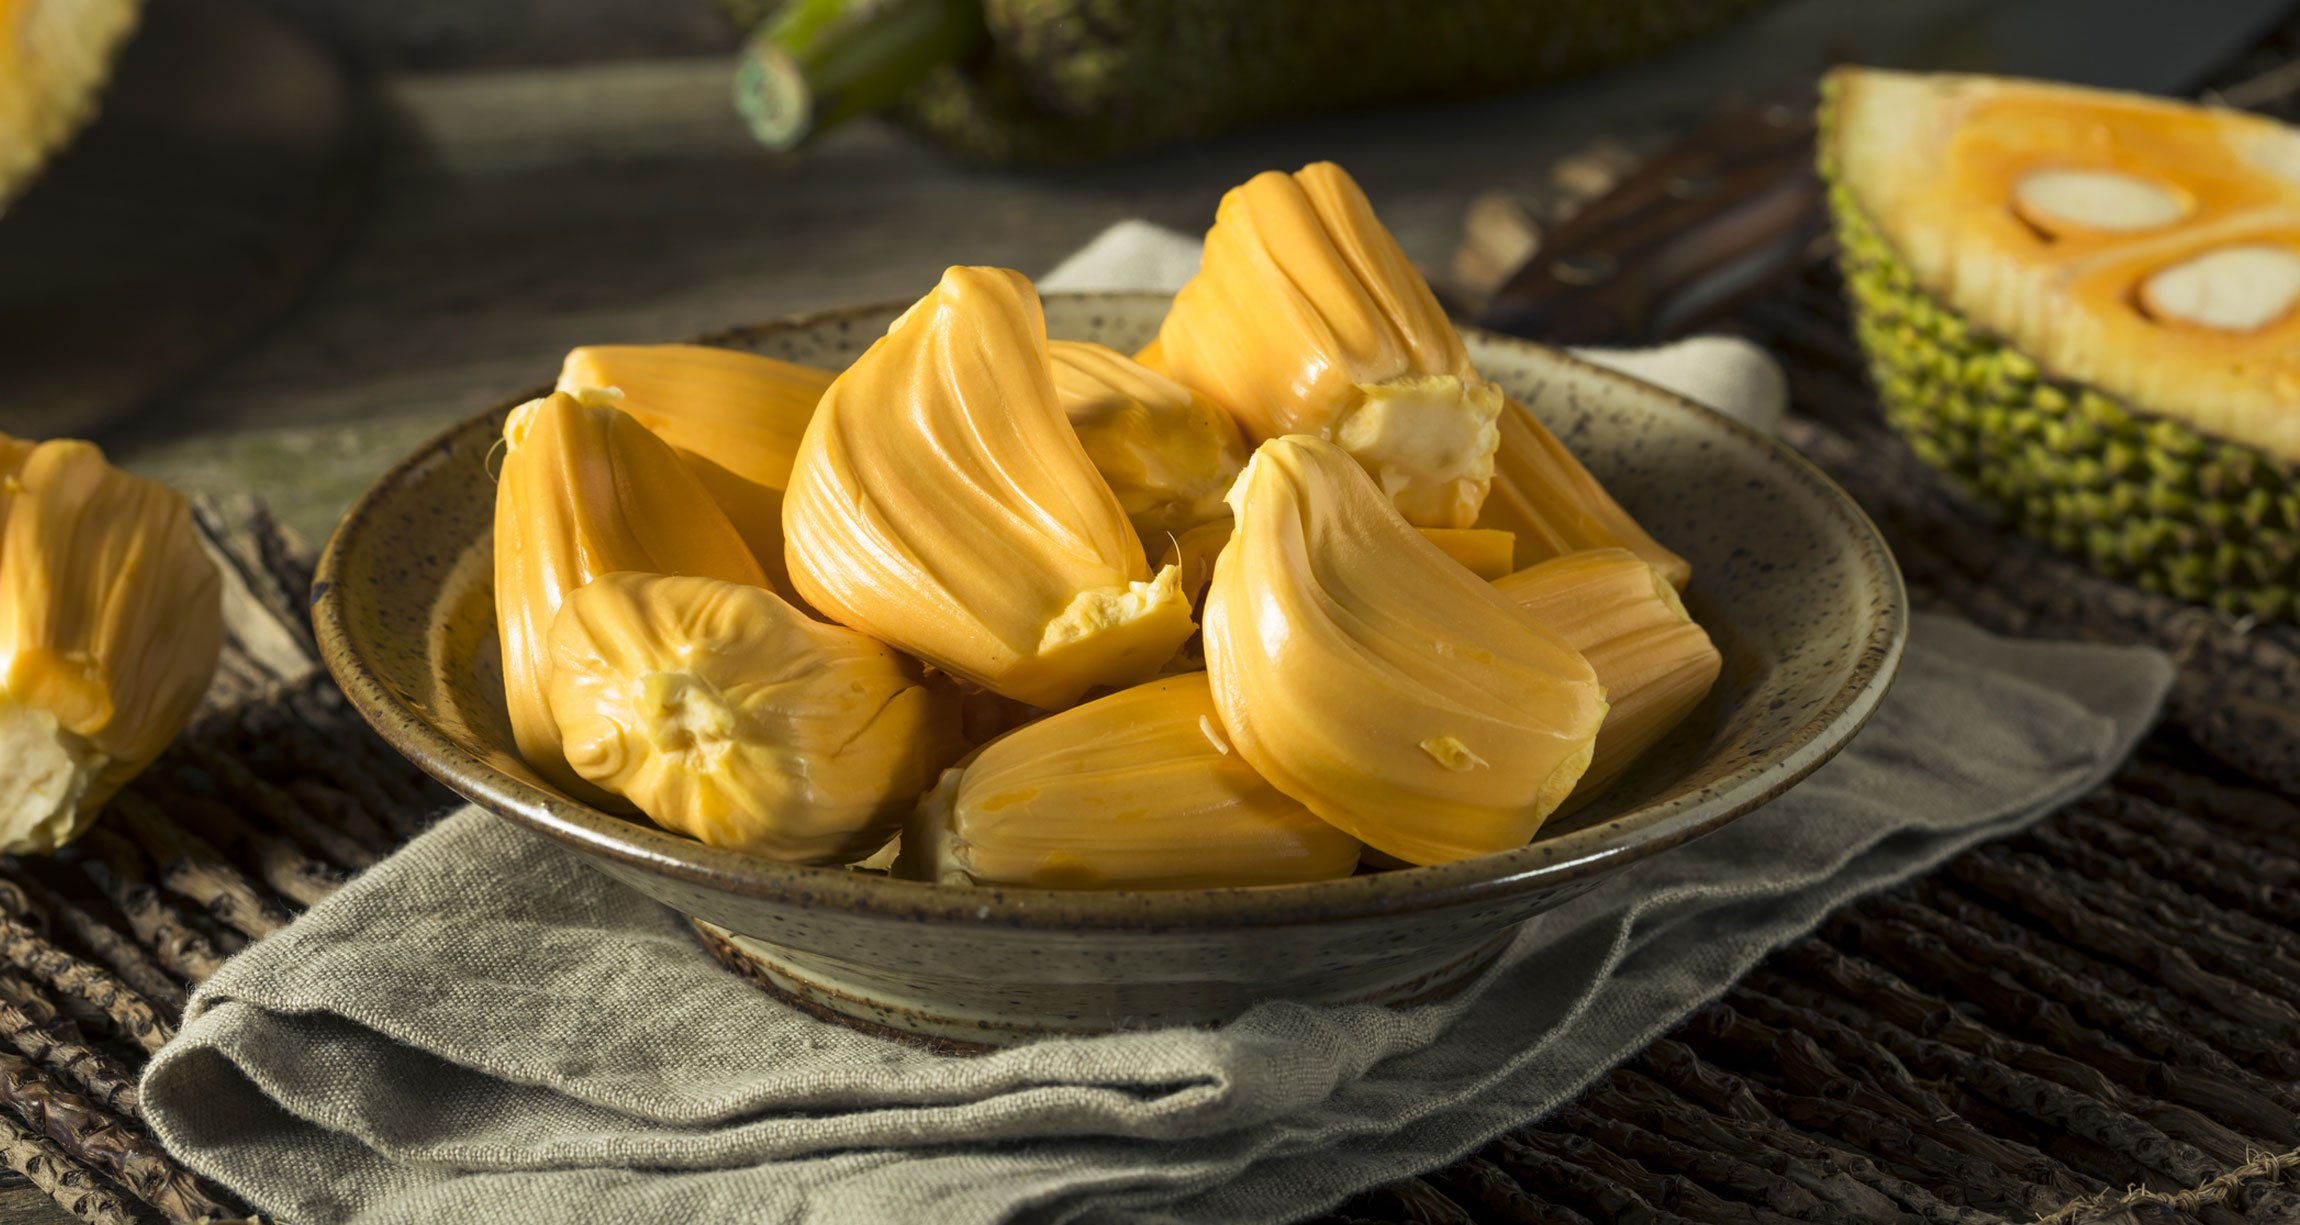 jackfruit in a bowl